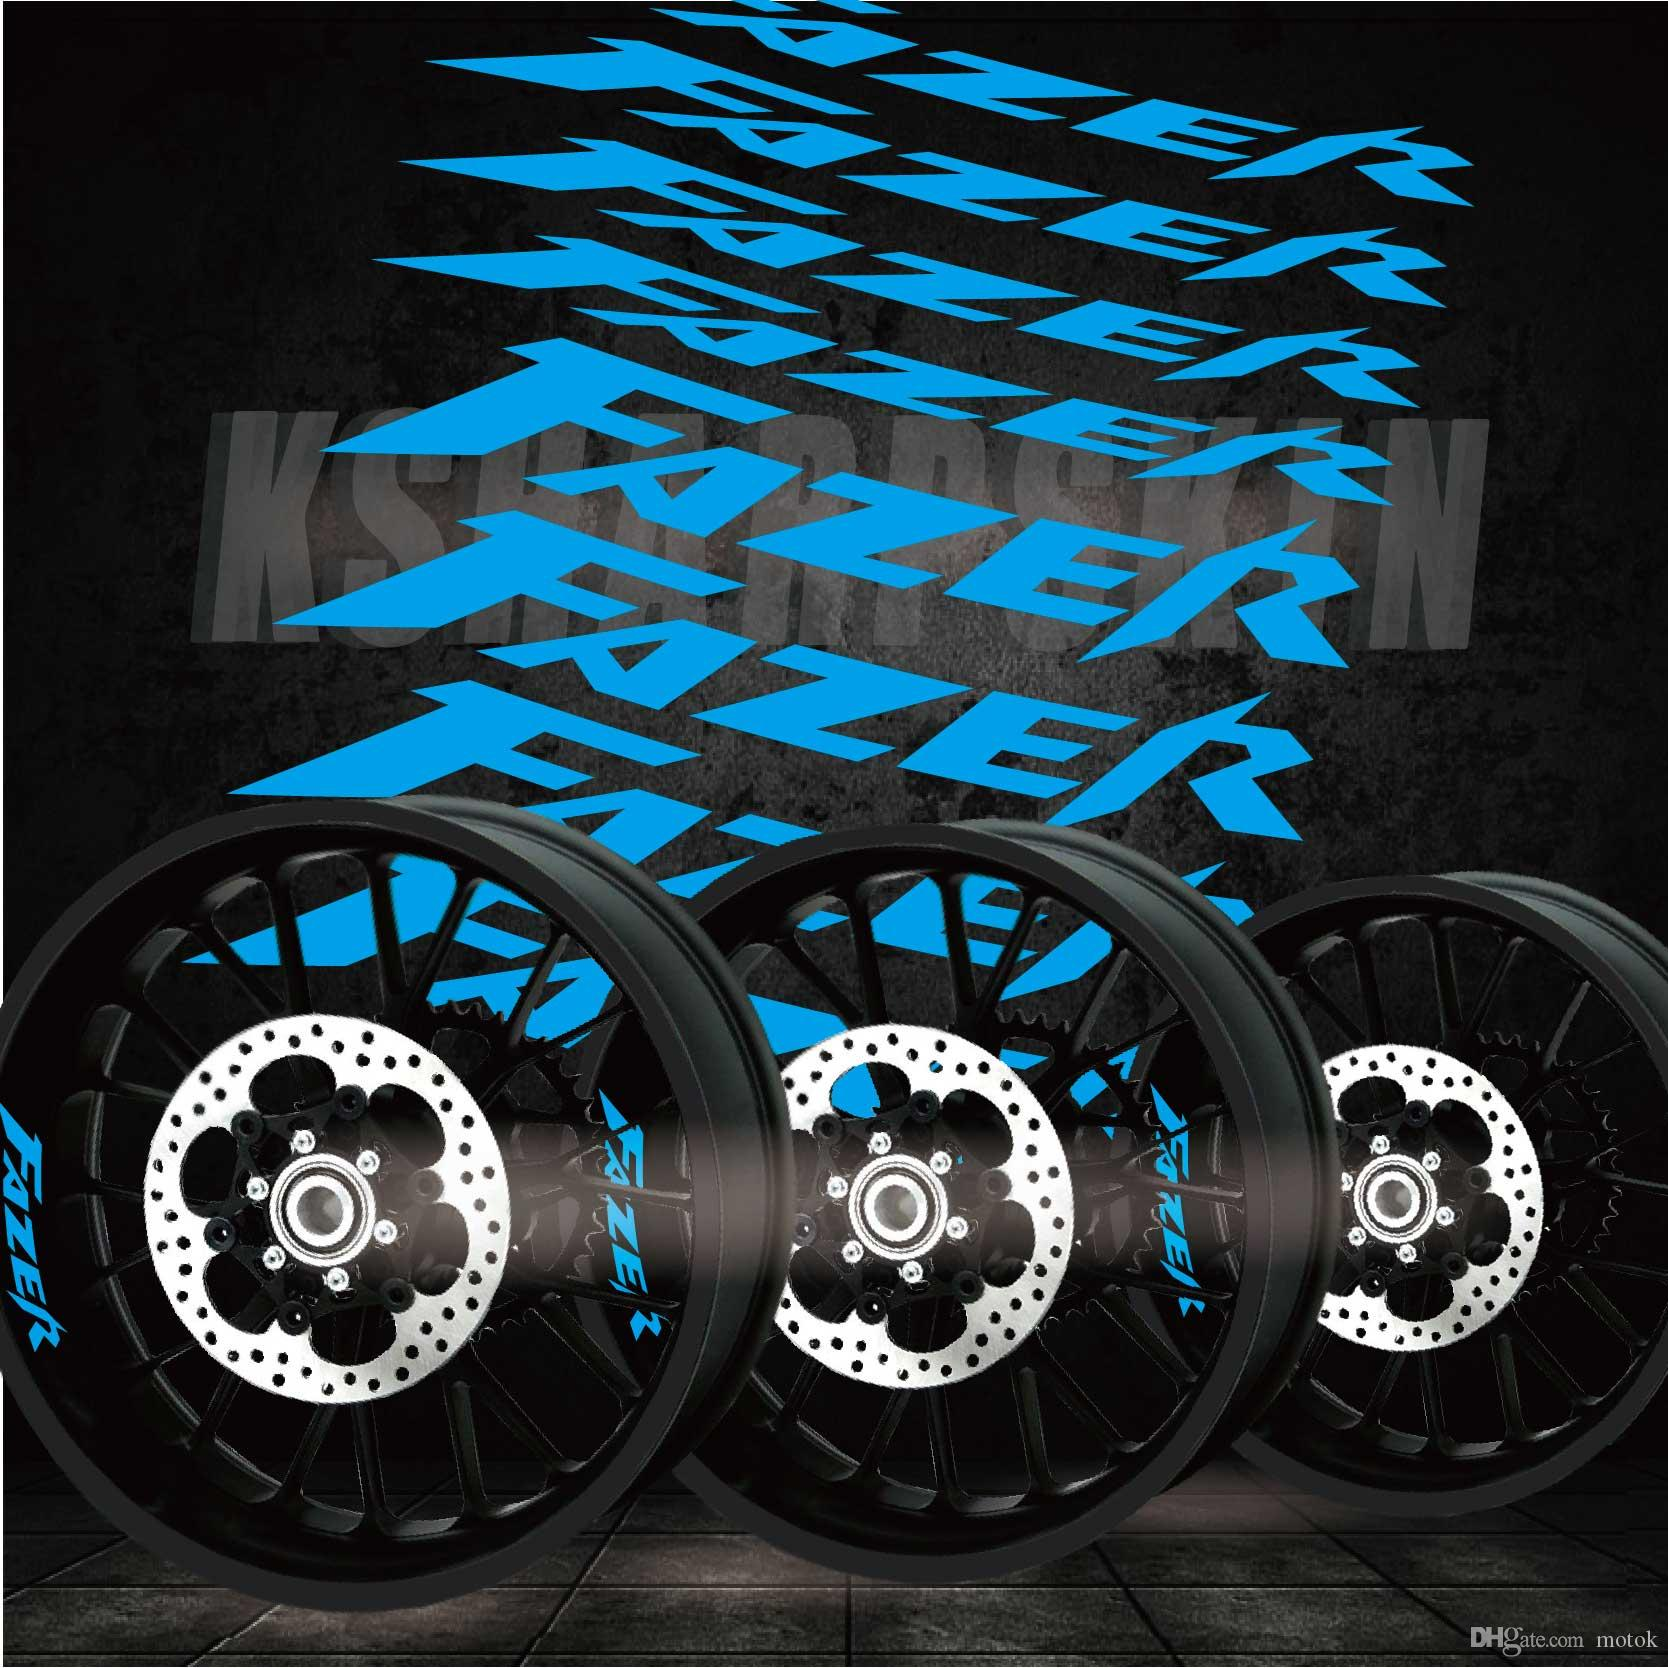 Reflective Adhesive Car Truck Body Stickers Personality Decal Decor Accessories